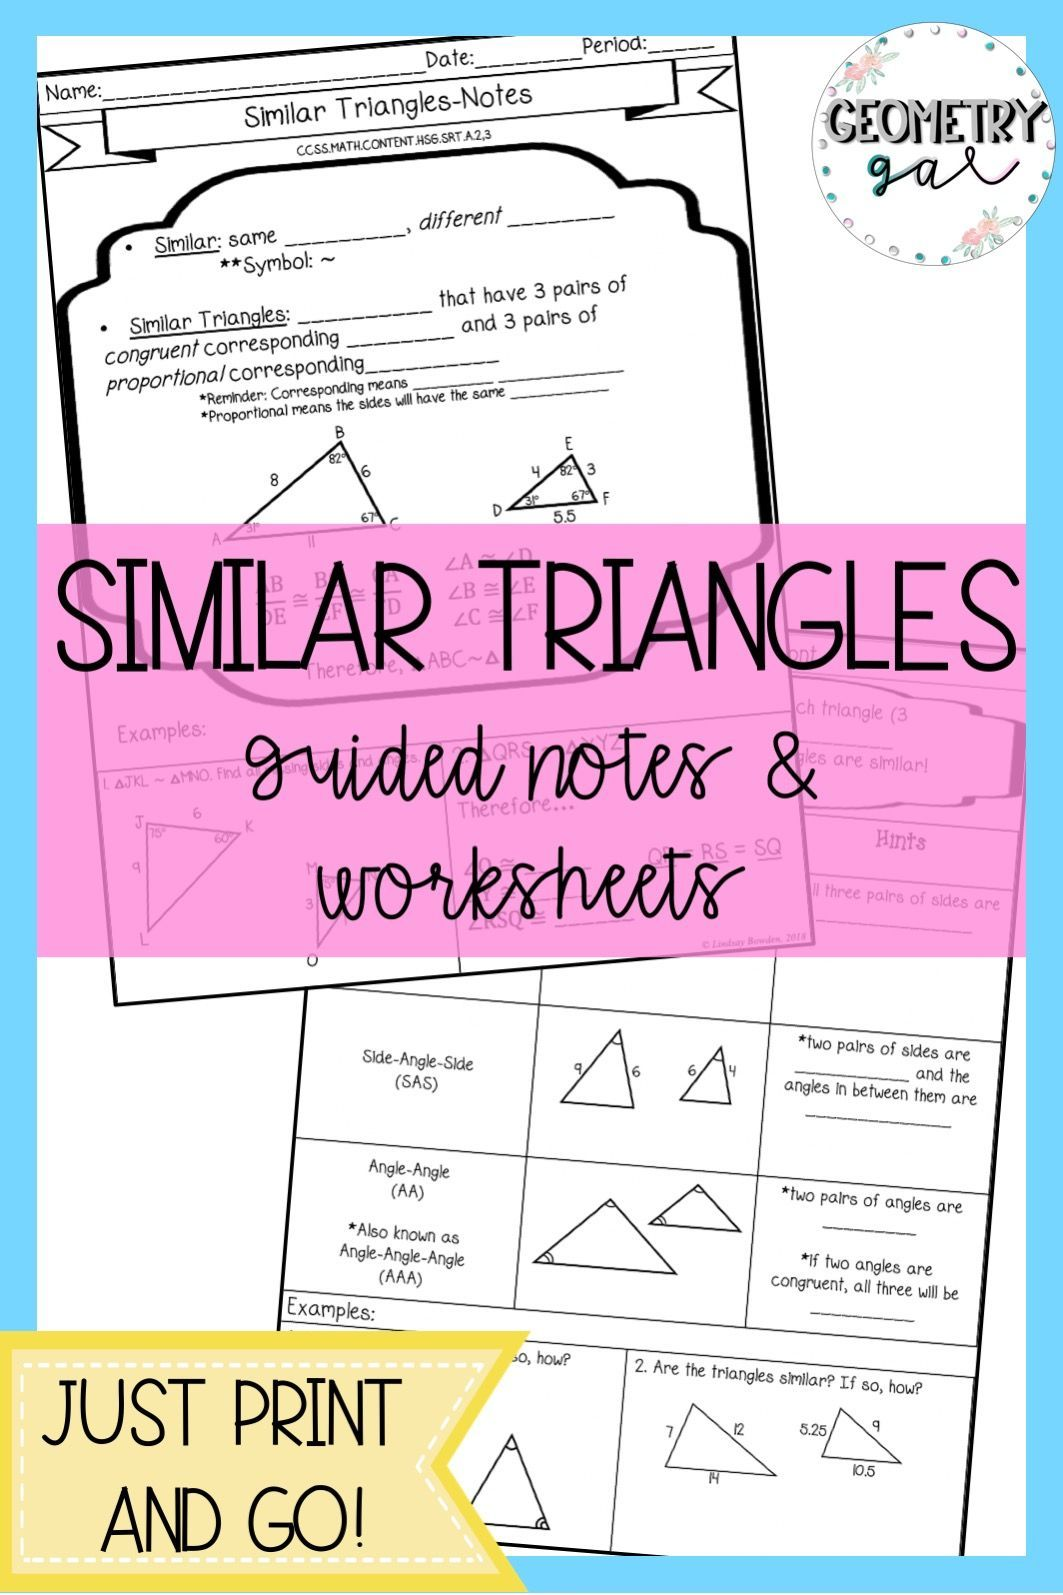 Similar Triangles Guided Notes And Worksheets Print And Go Lesson Fill In The Blank Notes Hel High School Geometry Notes Algebra Worksheets Similar Triangles